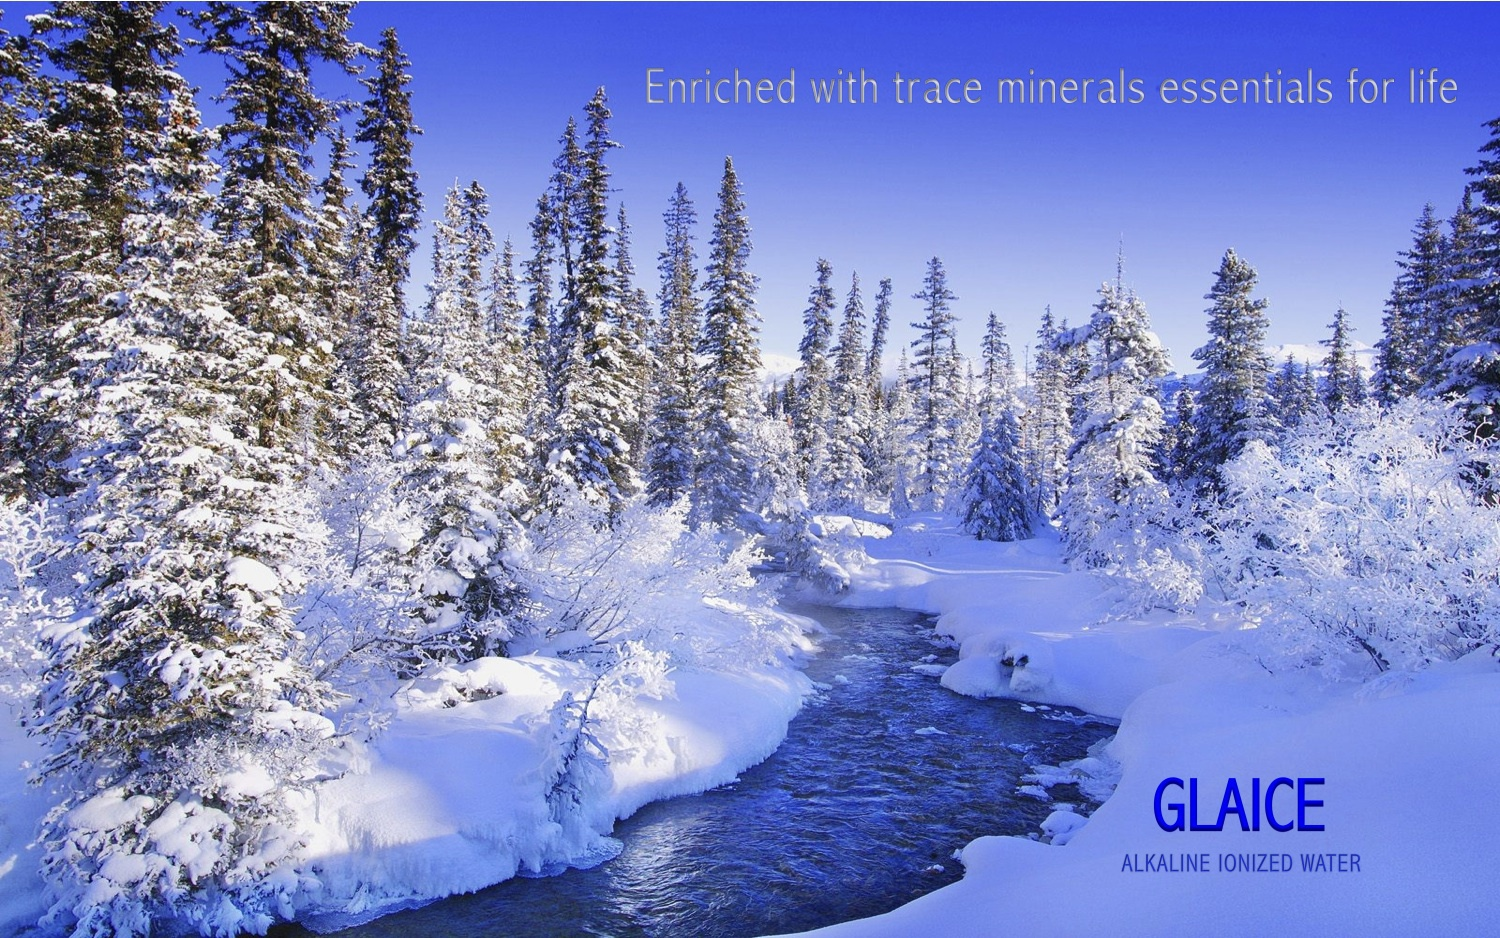 GLAICE+ENRICHED+WITH+TRACE+MINERALS+ESSENTIALS+FOR+LIFE